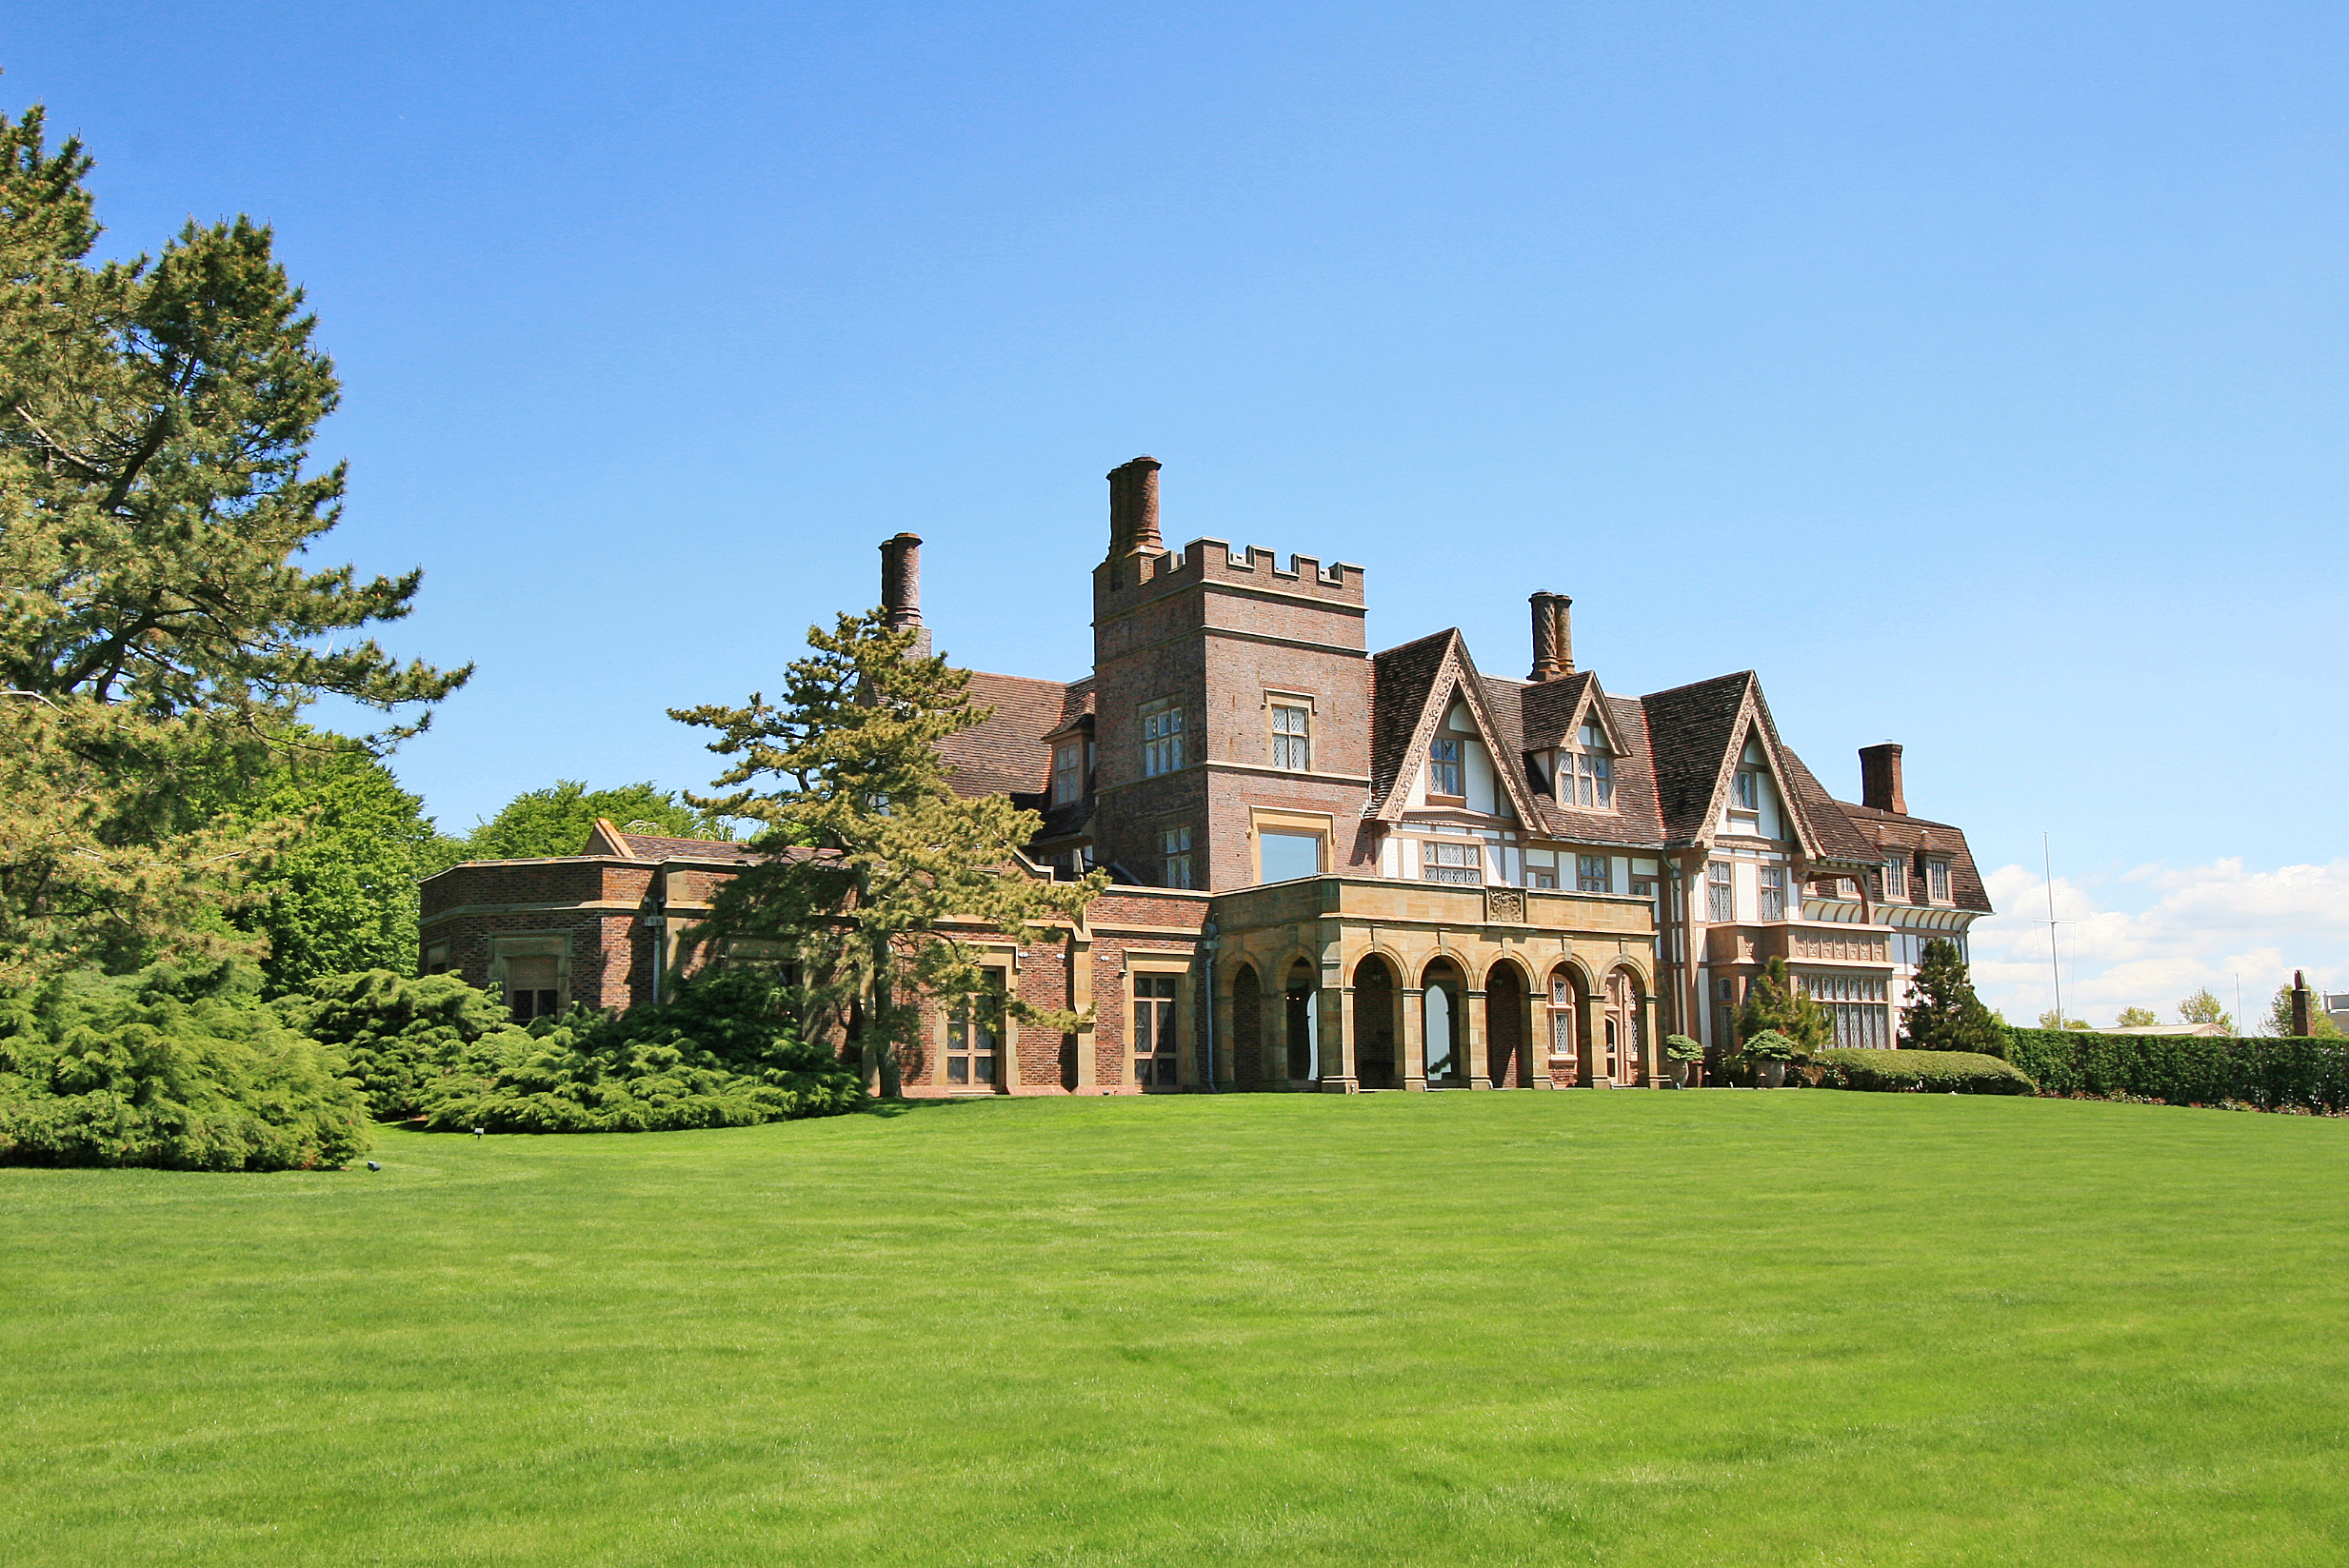 LILA DELMAN REAL ESTATE INTERNATIONAL ANNOUNCES SALE OF HISTORIC FAIRHOLME ESTATE